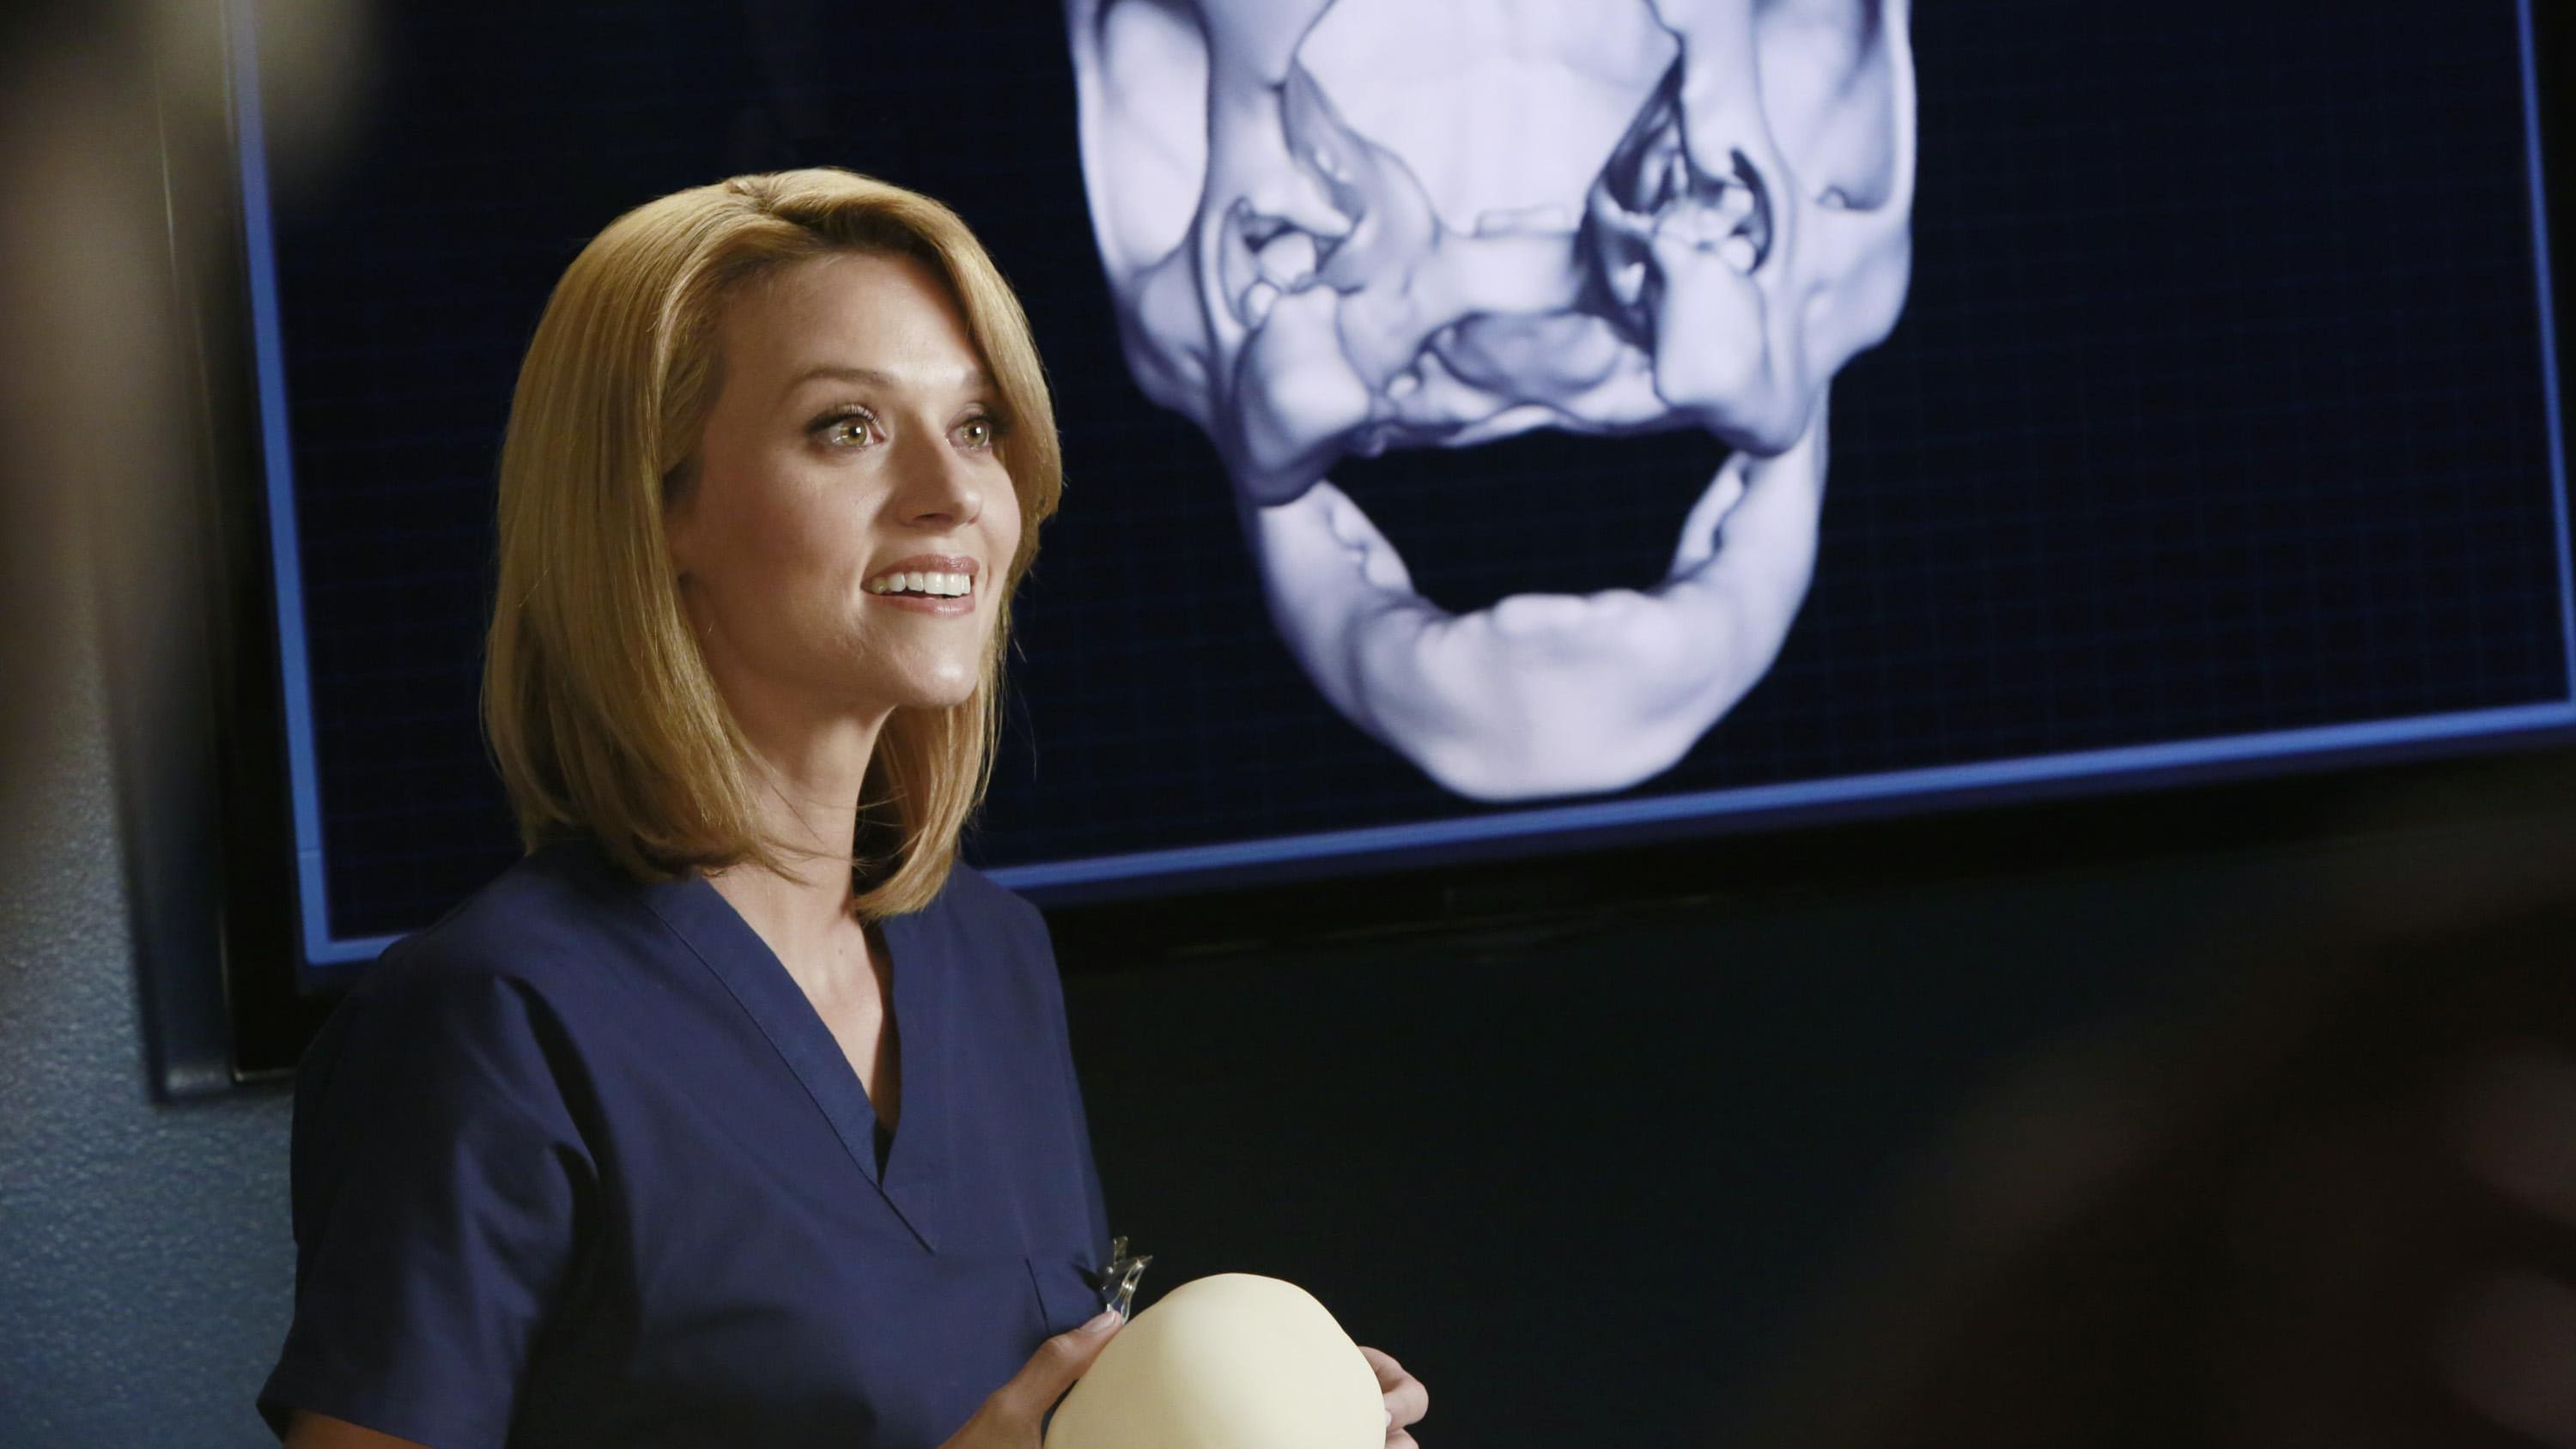 Grey's Anatomy - Season 9 Episode 22 : Do You Believe in Magic?